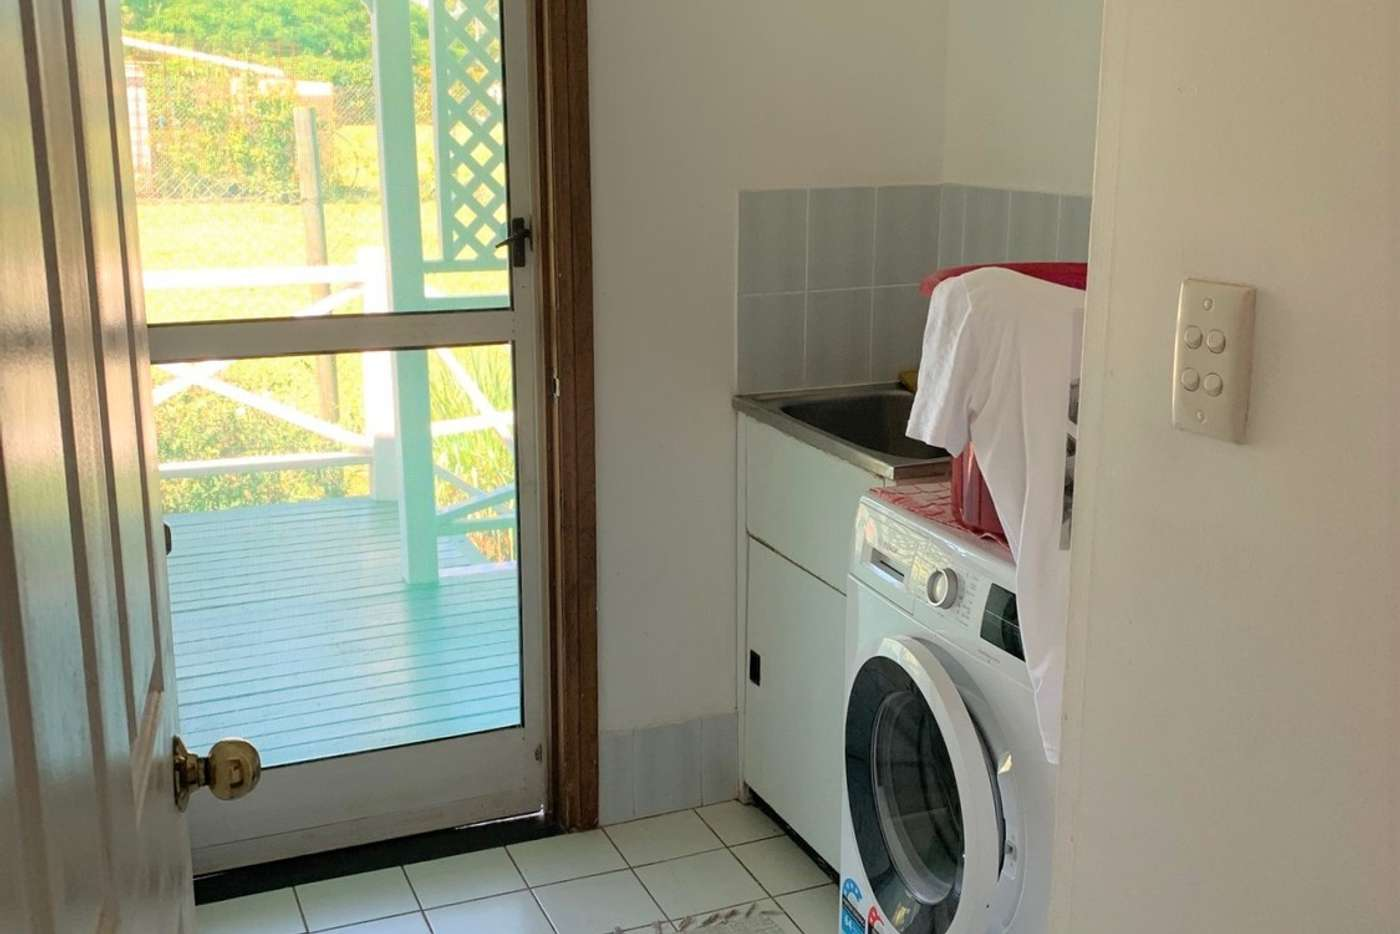 Sixth view of Homely house listing, 8 Michael Street, Lamb Island QLD 4184